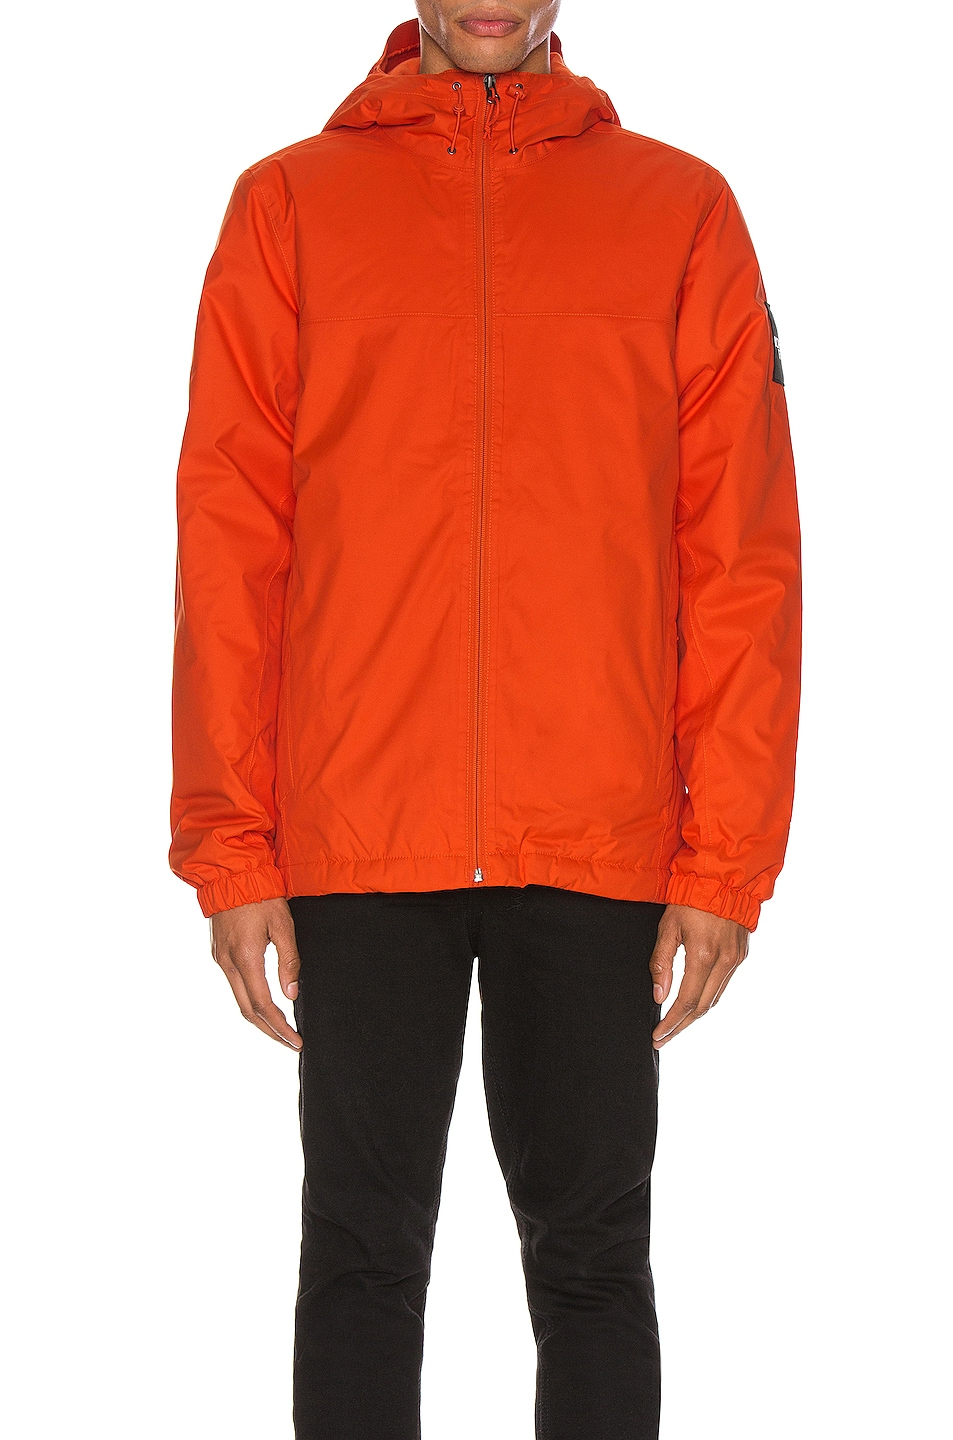 Image 3 of The North Face Black Box Ins Mountain Q Jacket in Tangerine Tango